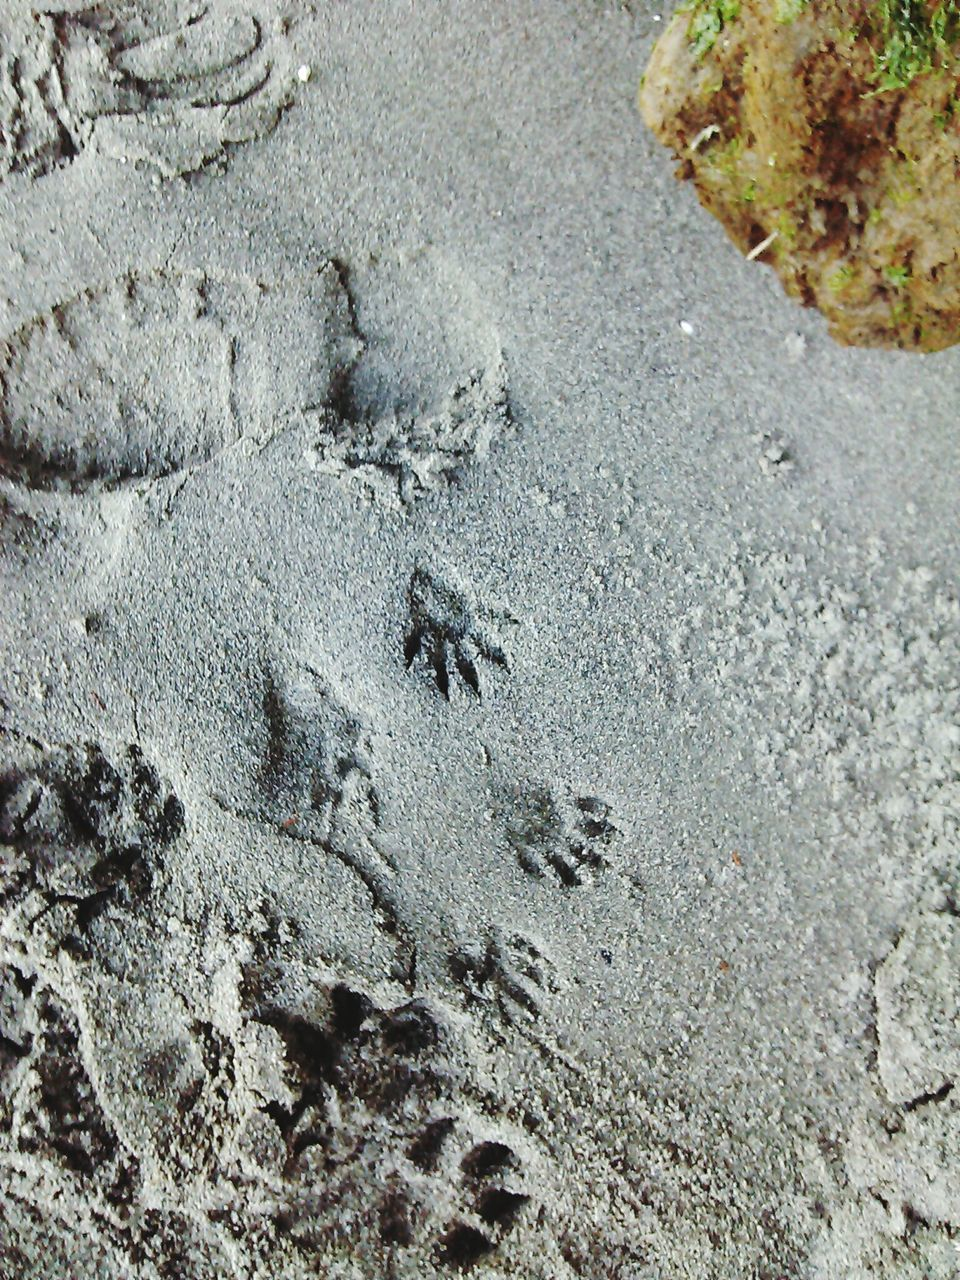 footprint, beach, sand, day, high angle view, animal track, outdoors, paw print, no people, nature, track - imprint, close-up, animal themes